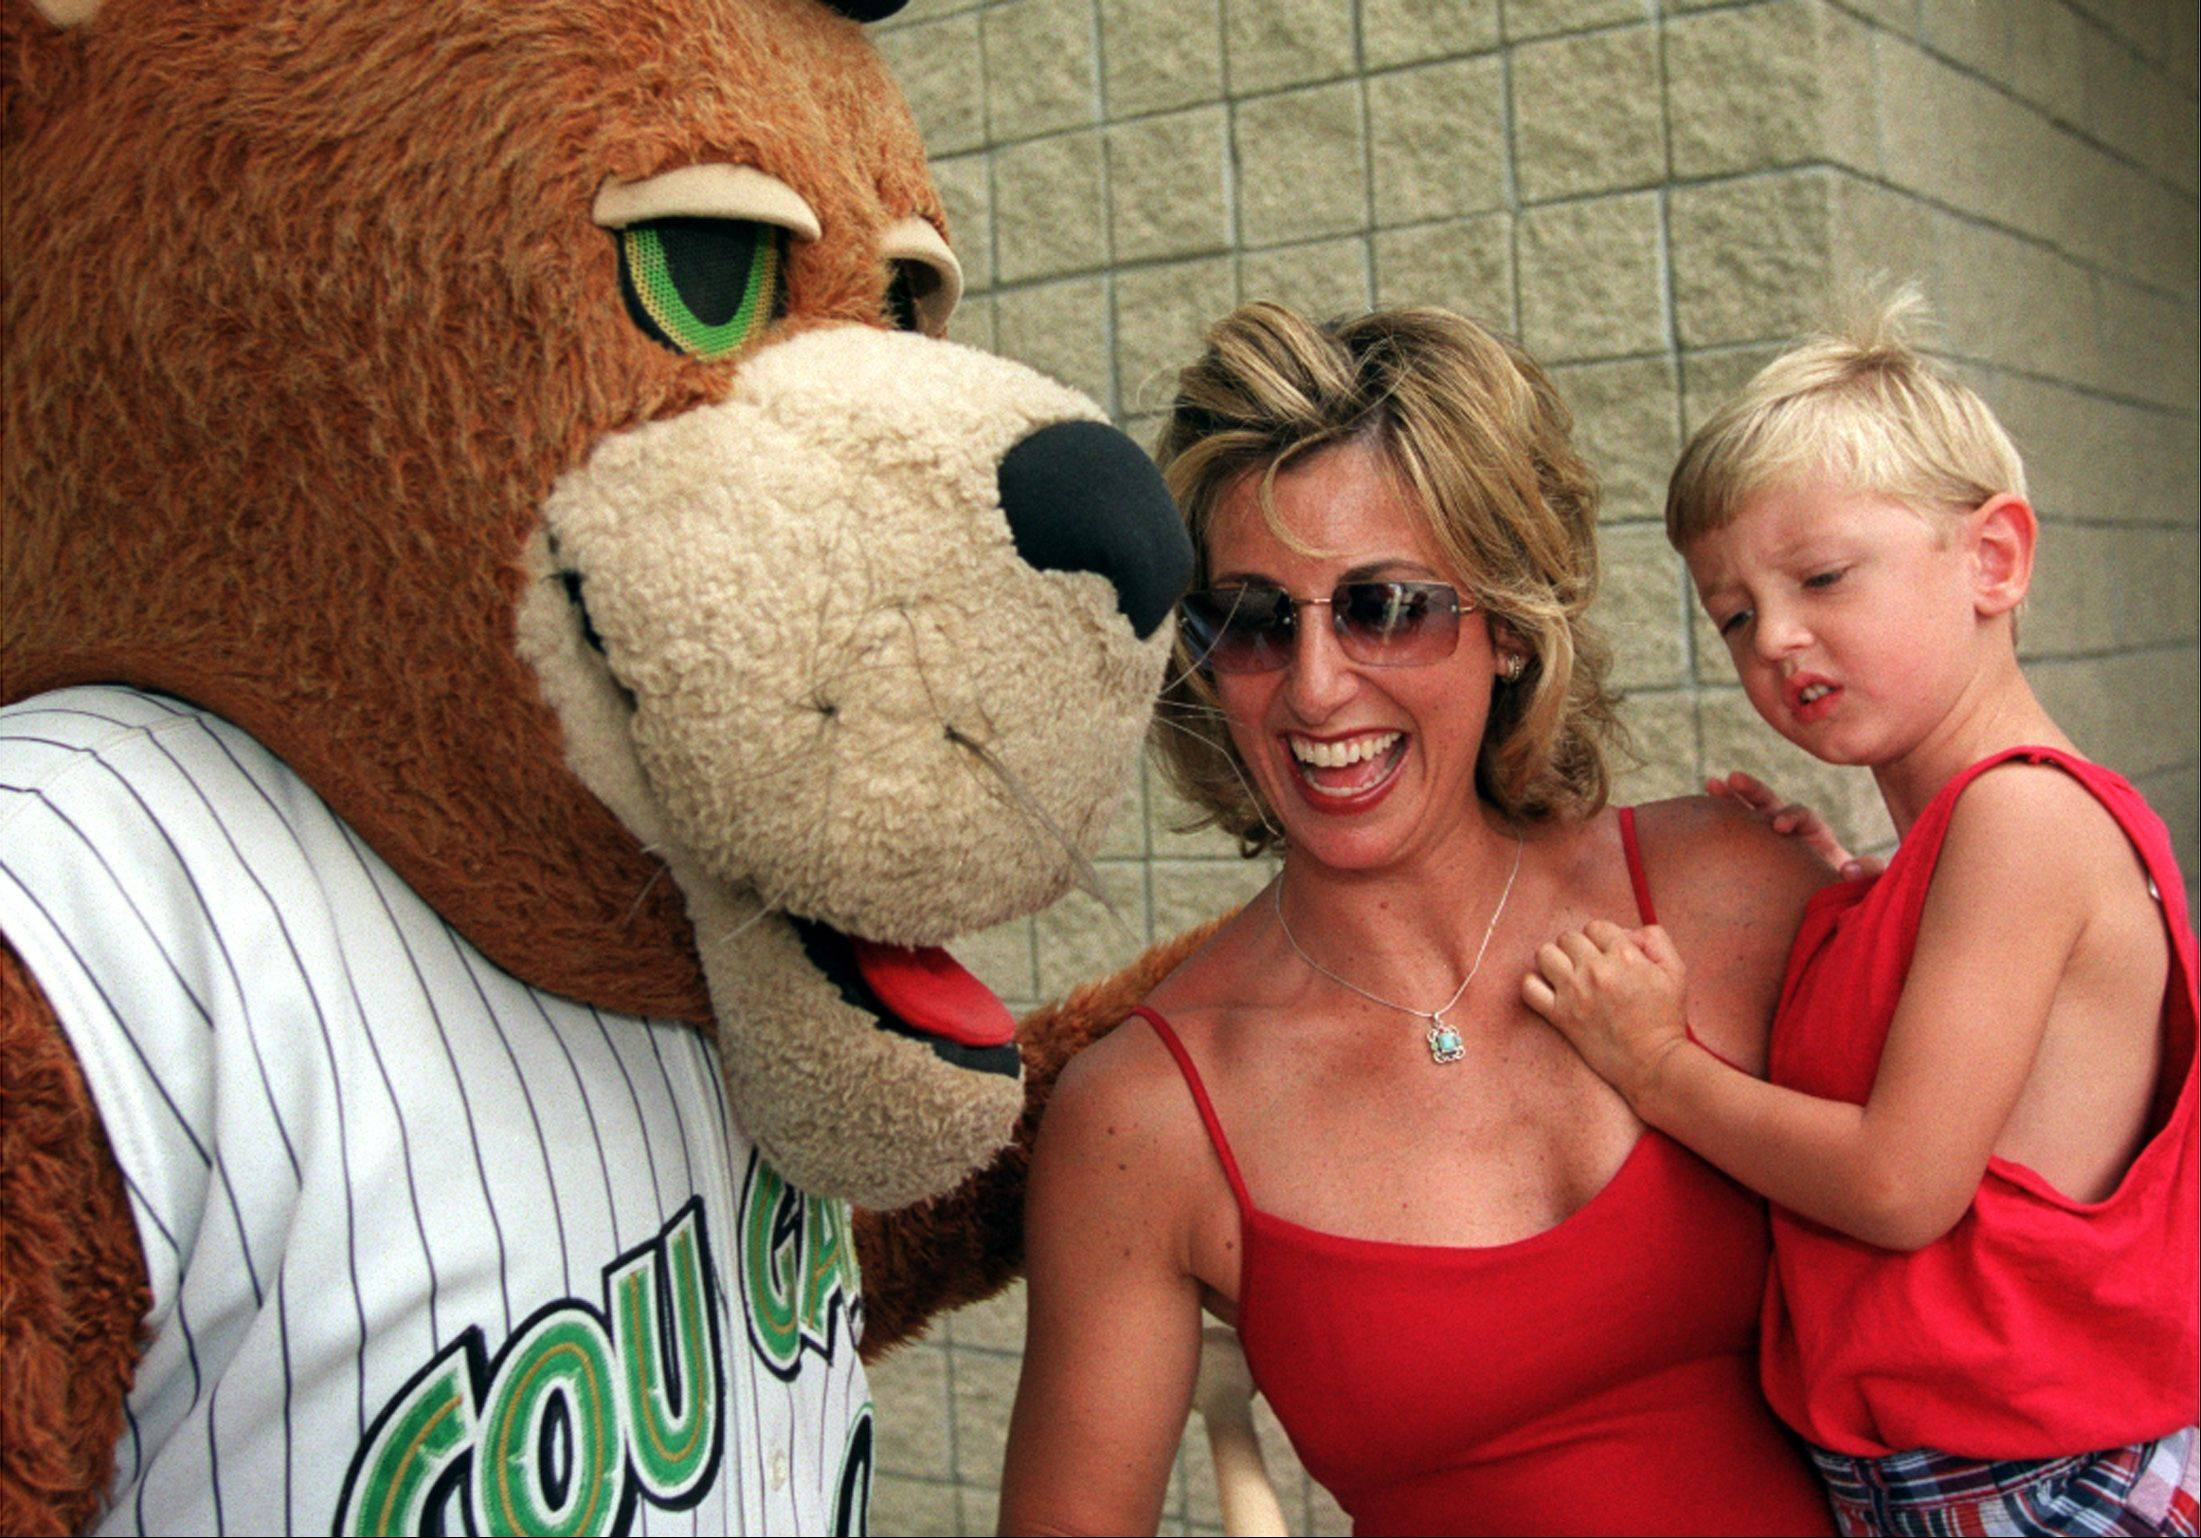 Jill Card of Winfield is congratulated by Ozzie, the Kane County Cougars mascot, after being told in August 2002 she was the 5 millionth fan through the gate at what was then Elfstrom Stadium in Geneva. Her son E.J., 4, seems unmoved.